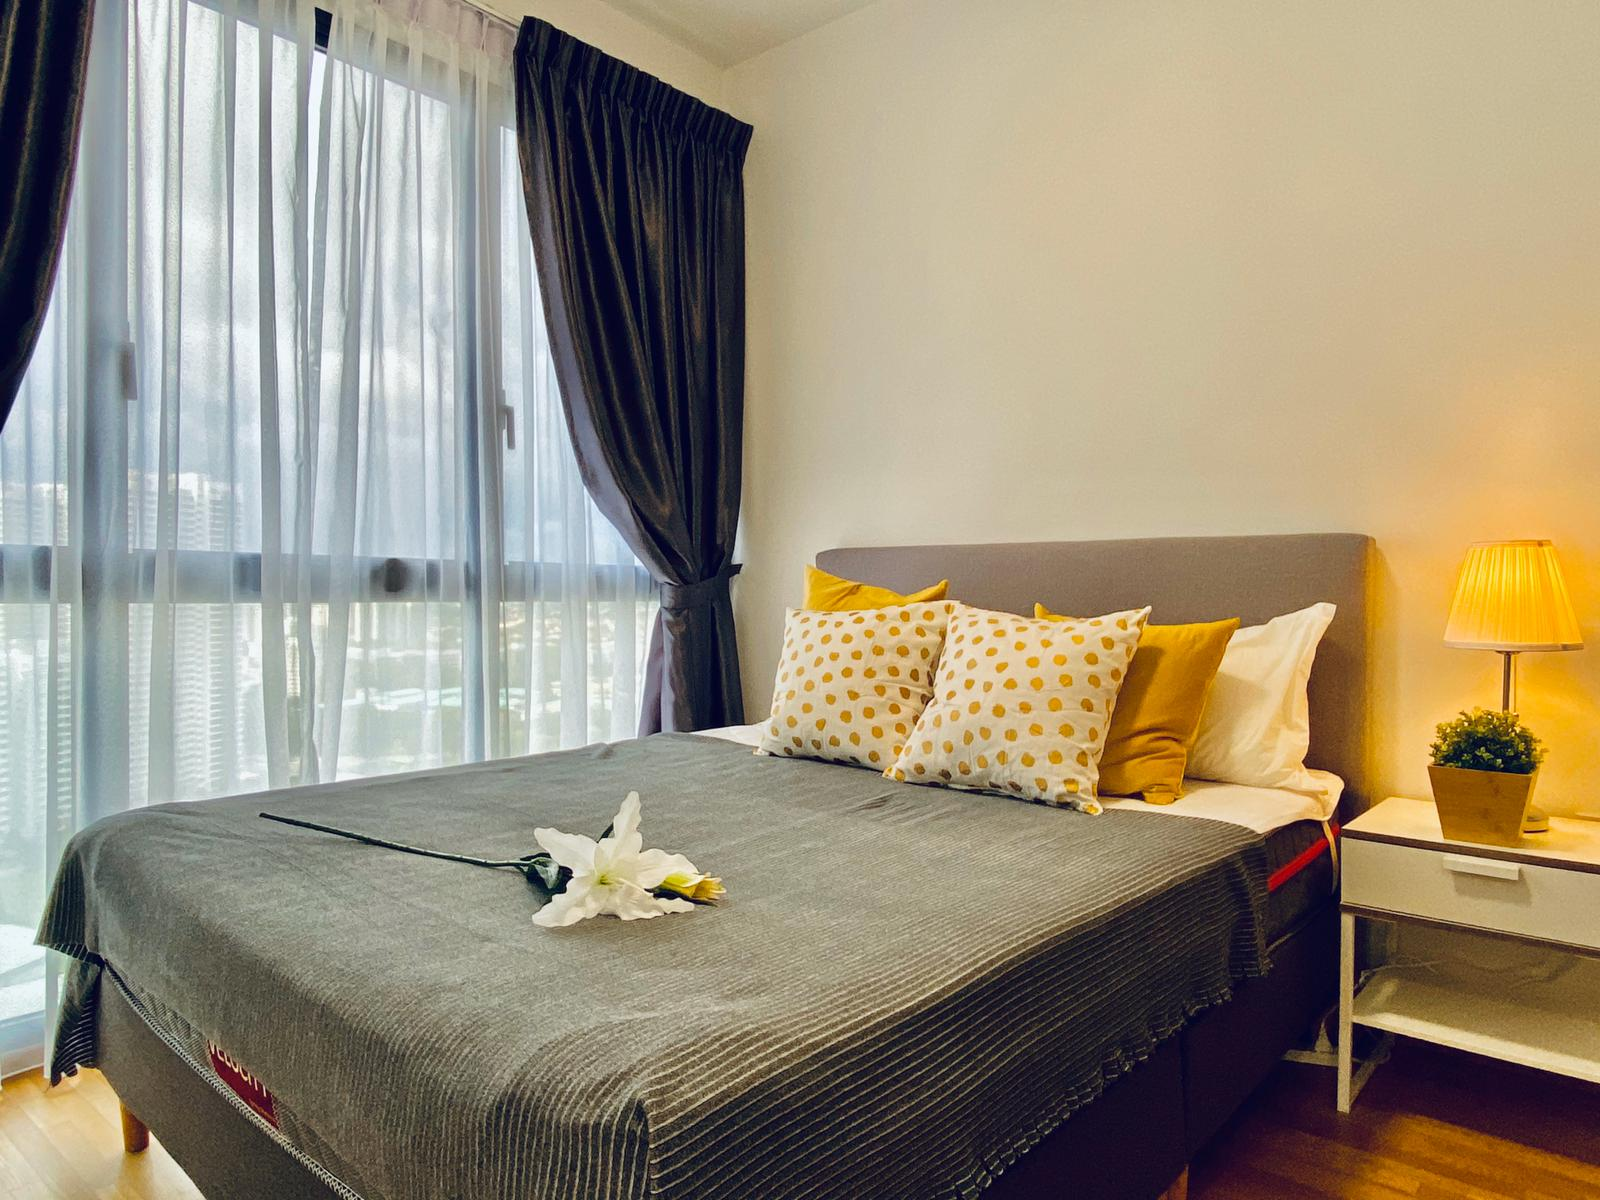 Fully Furnished 4-Bedroom Apartment for Rent at Easycity ...